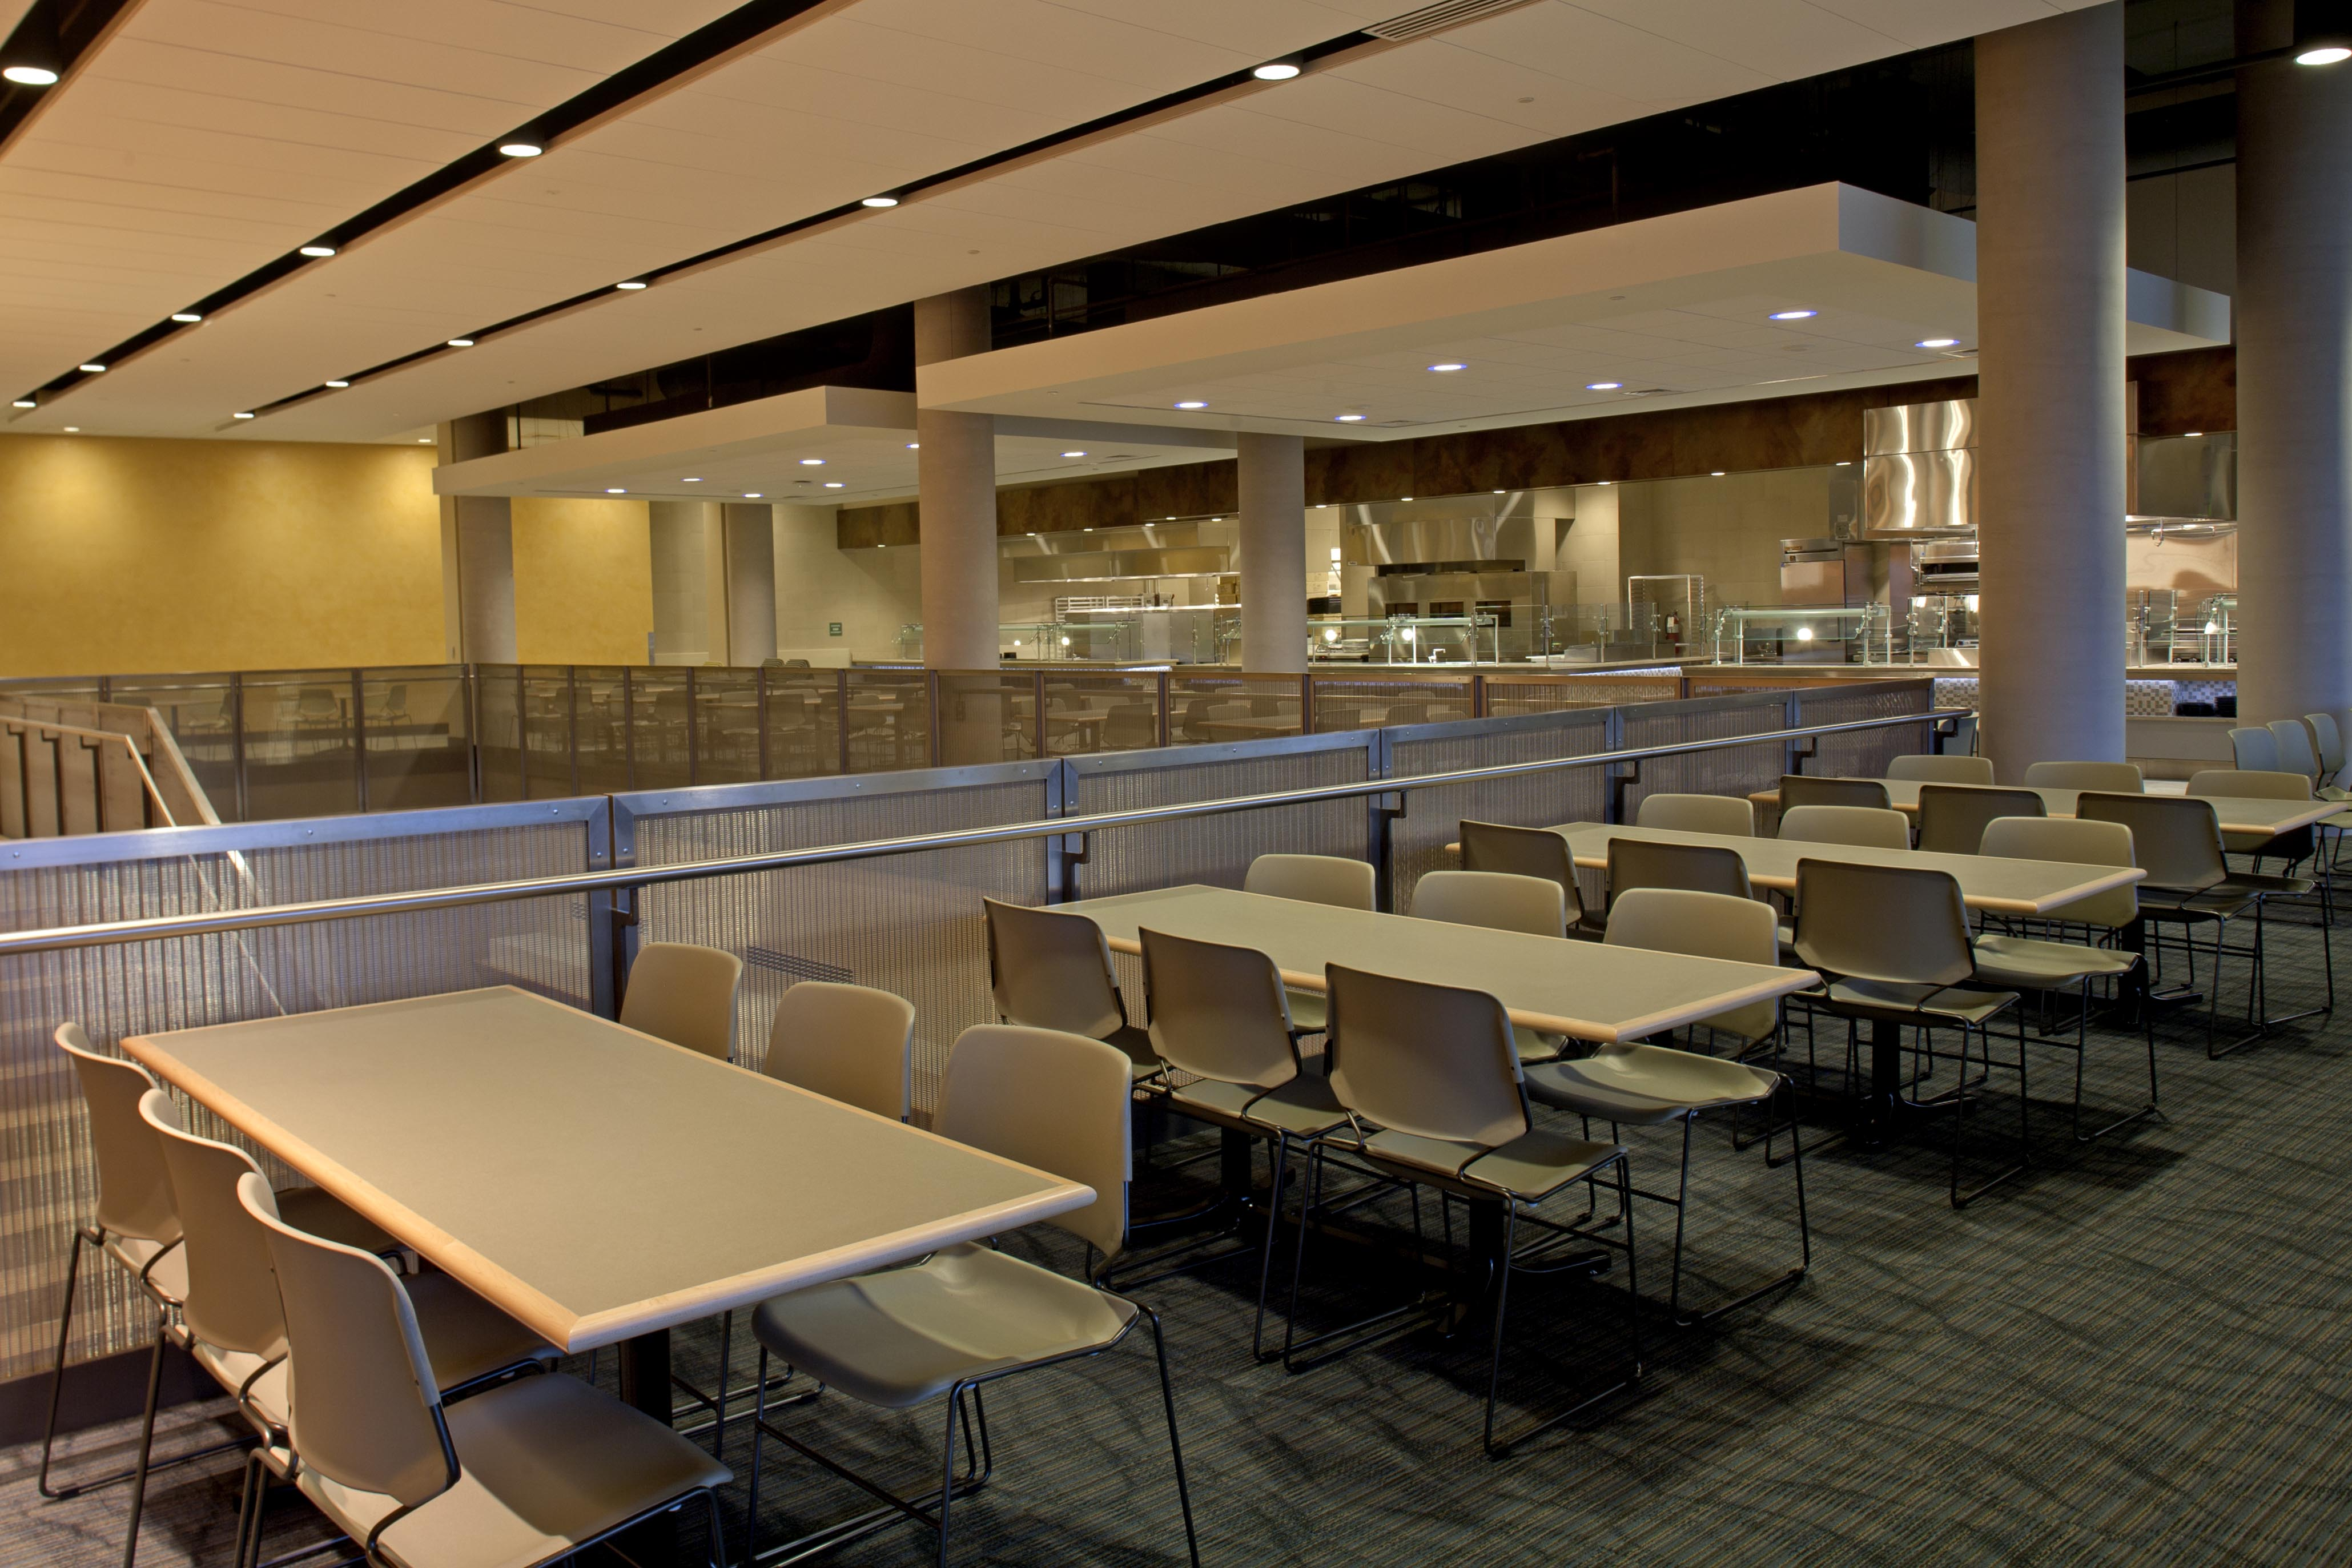 Banker Wire mesh is often used in dining spaces to balance privacy and light transmission.